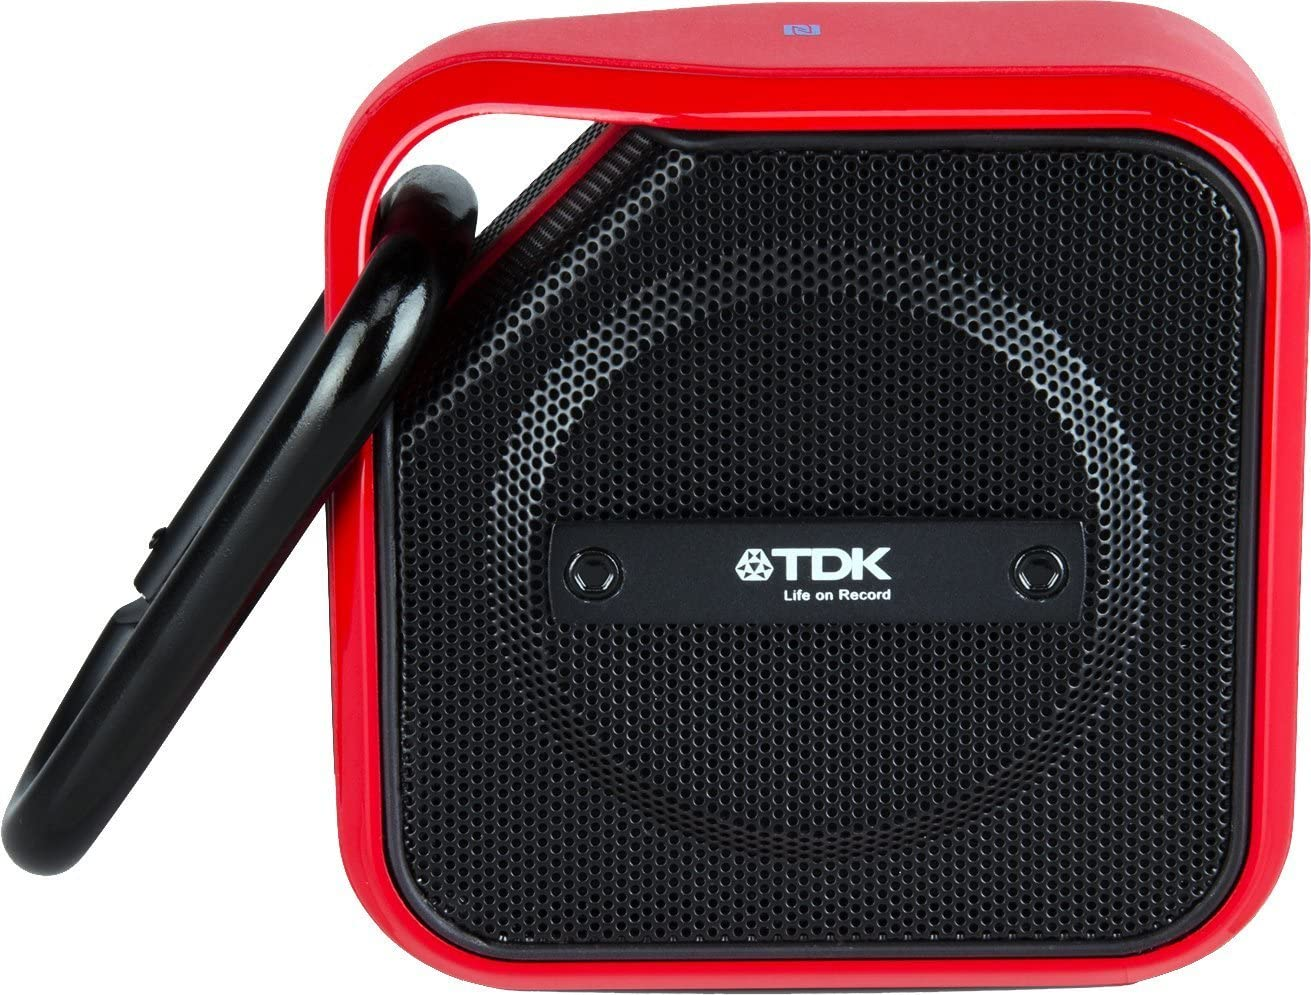 TDK Life On Record Micro A12 Wireless Bluetooth Speaker, Red